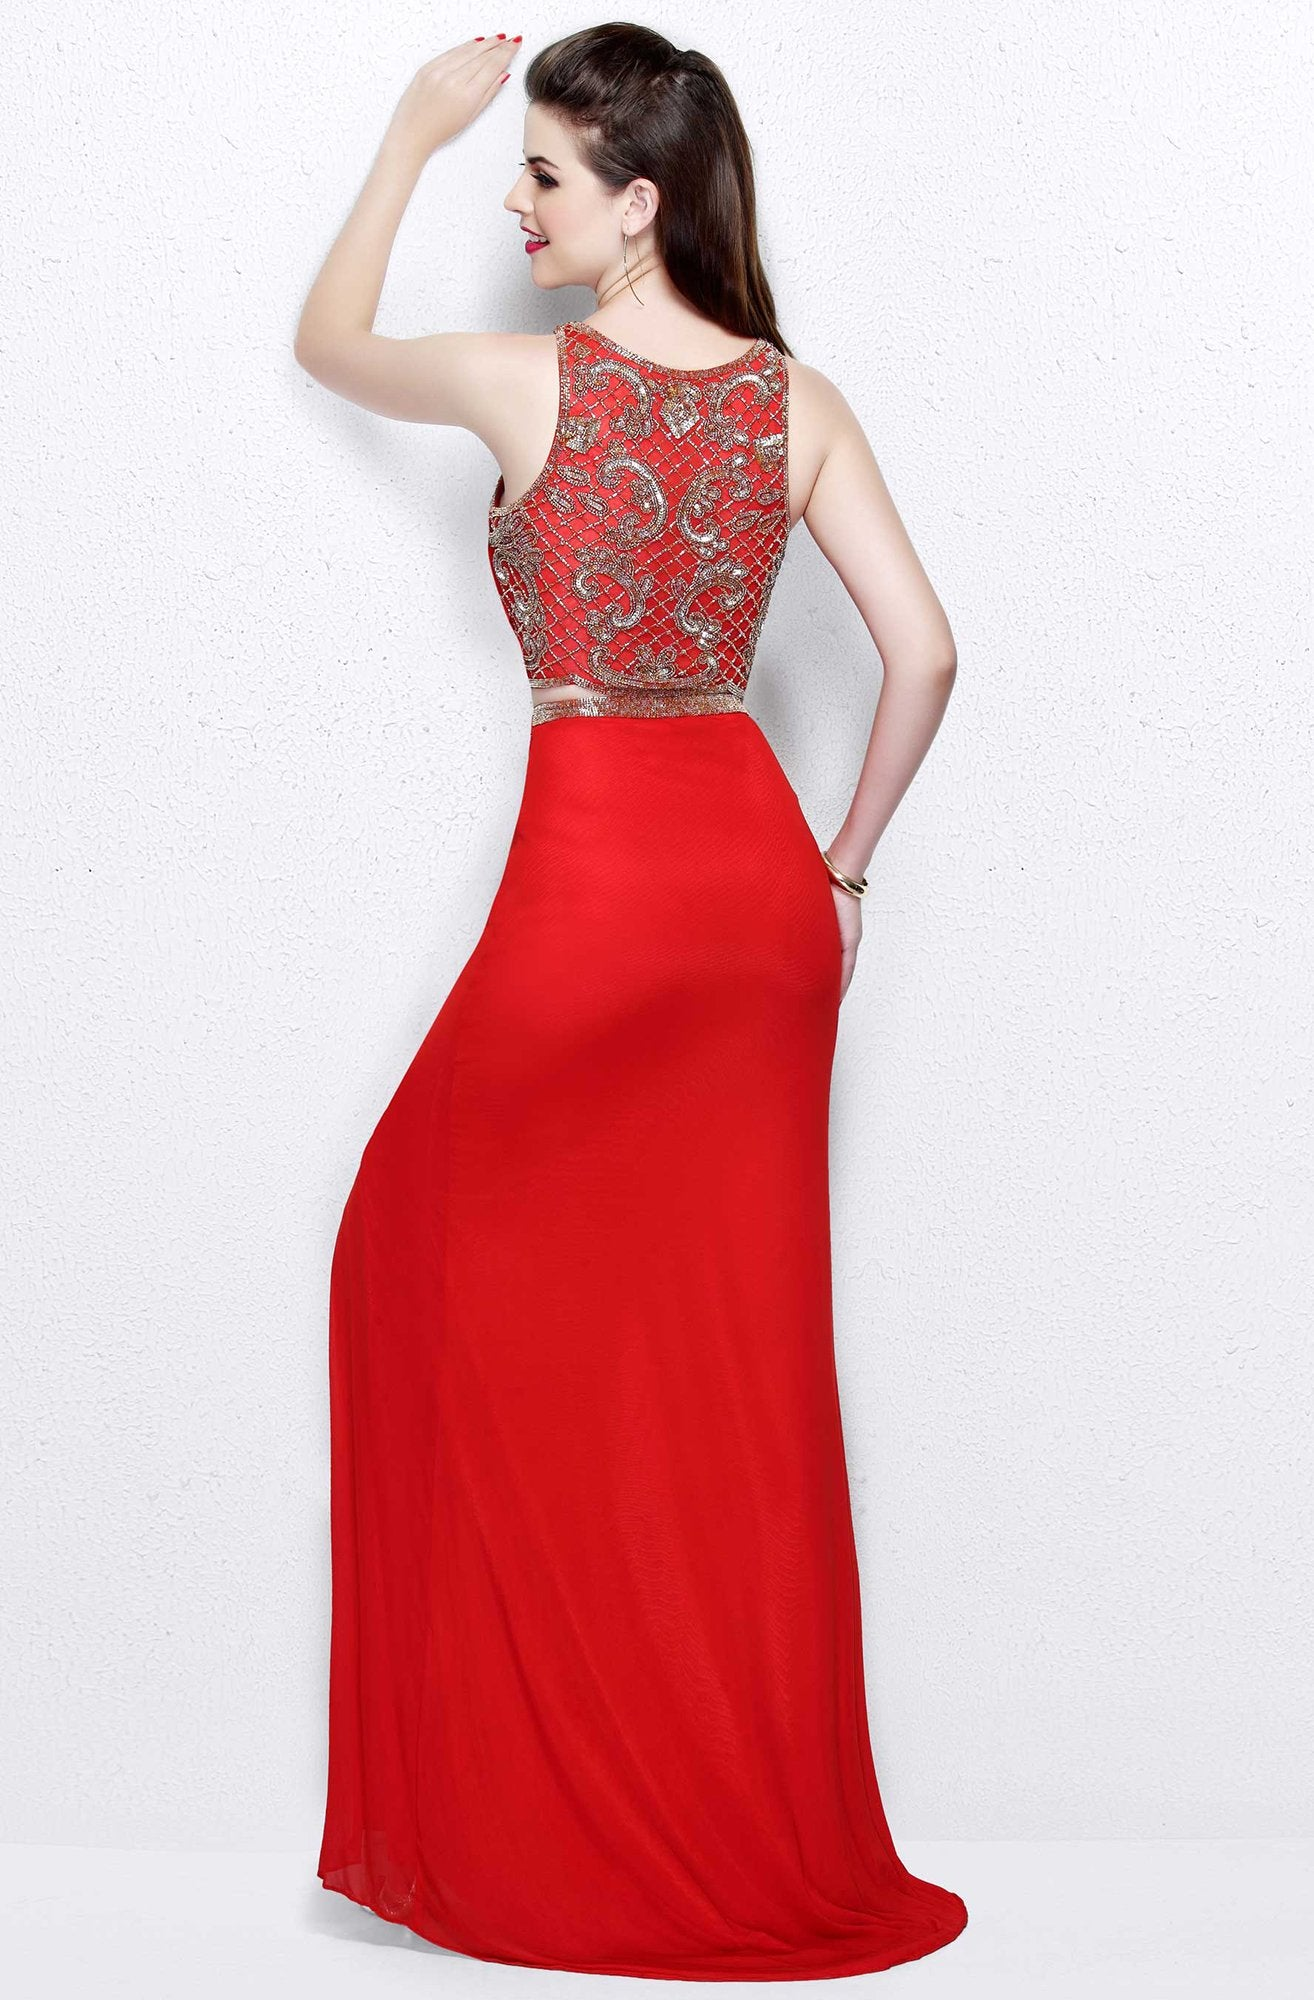 Primavera Couture - Two Piece Sleeveless Long Gown with Slit 1846 in Red